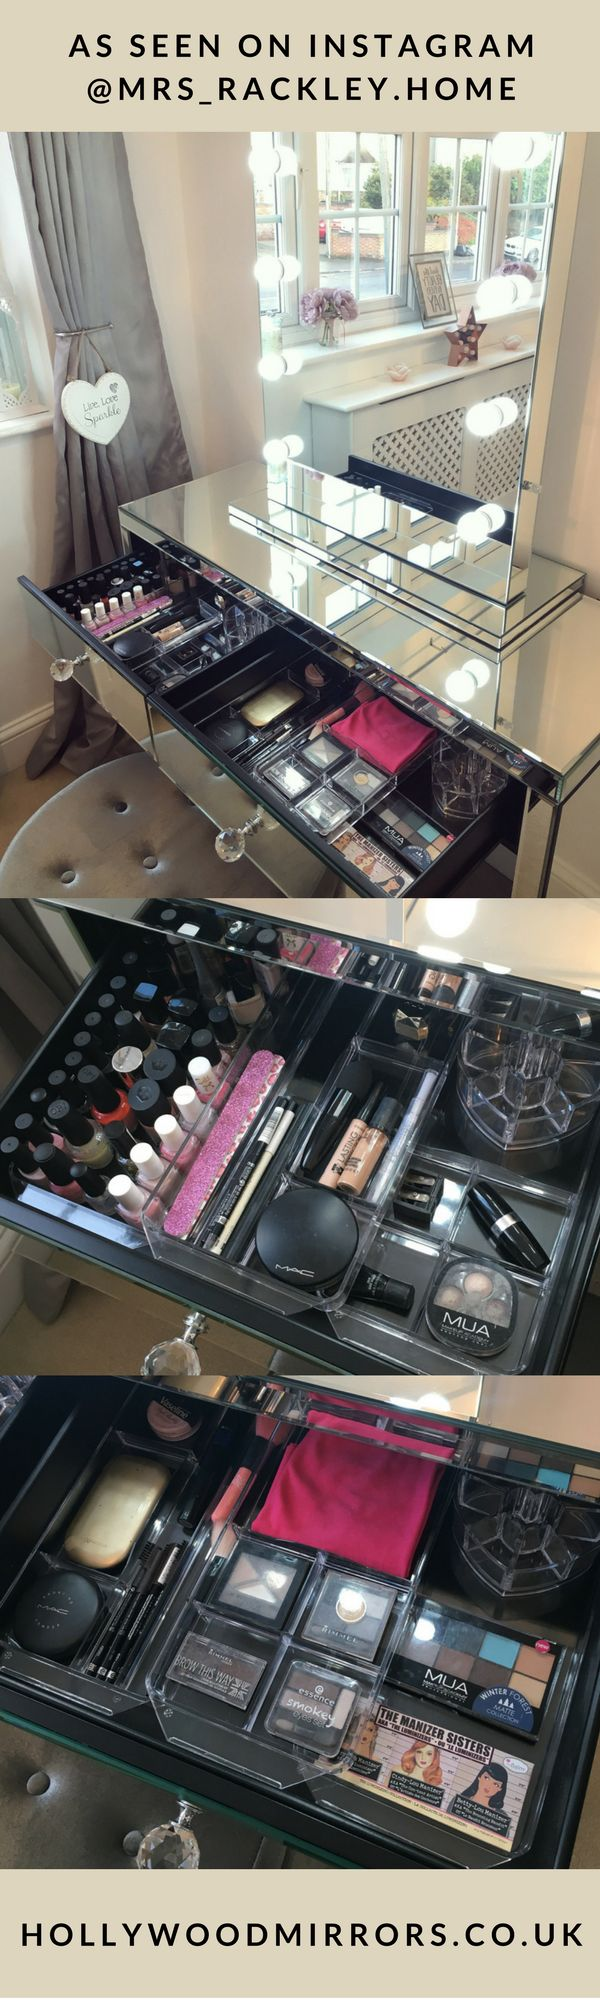 1000 ideas about lighted makeup mirror on pinterest lighted vanity mirror makeup vanity. Black Bedroom Furniture Sets. Home Design Ideas